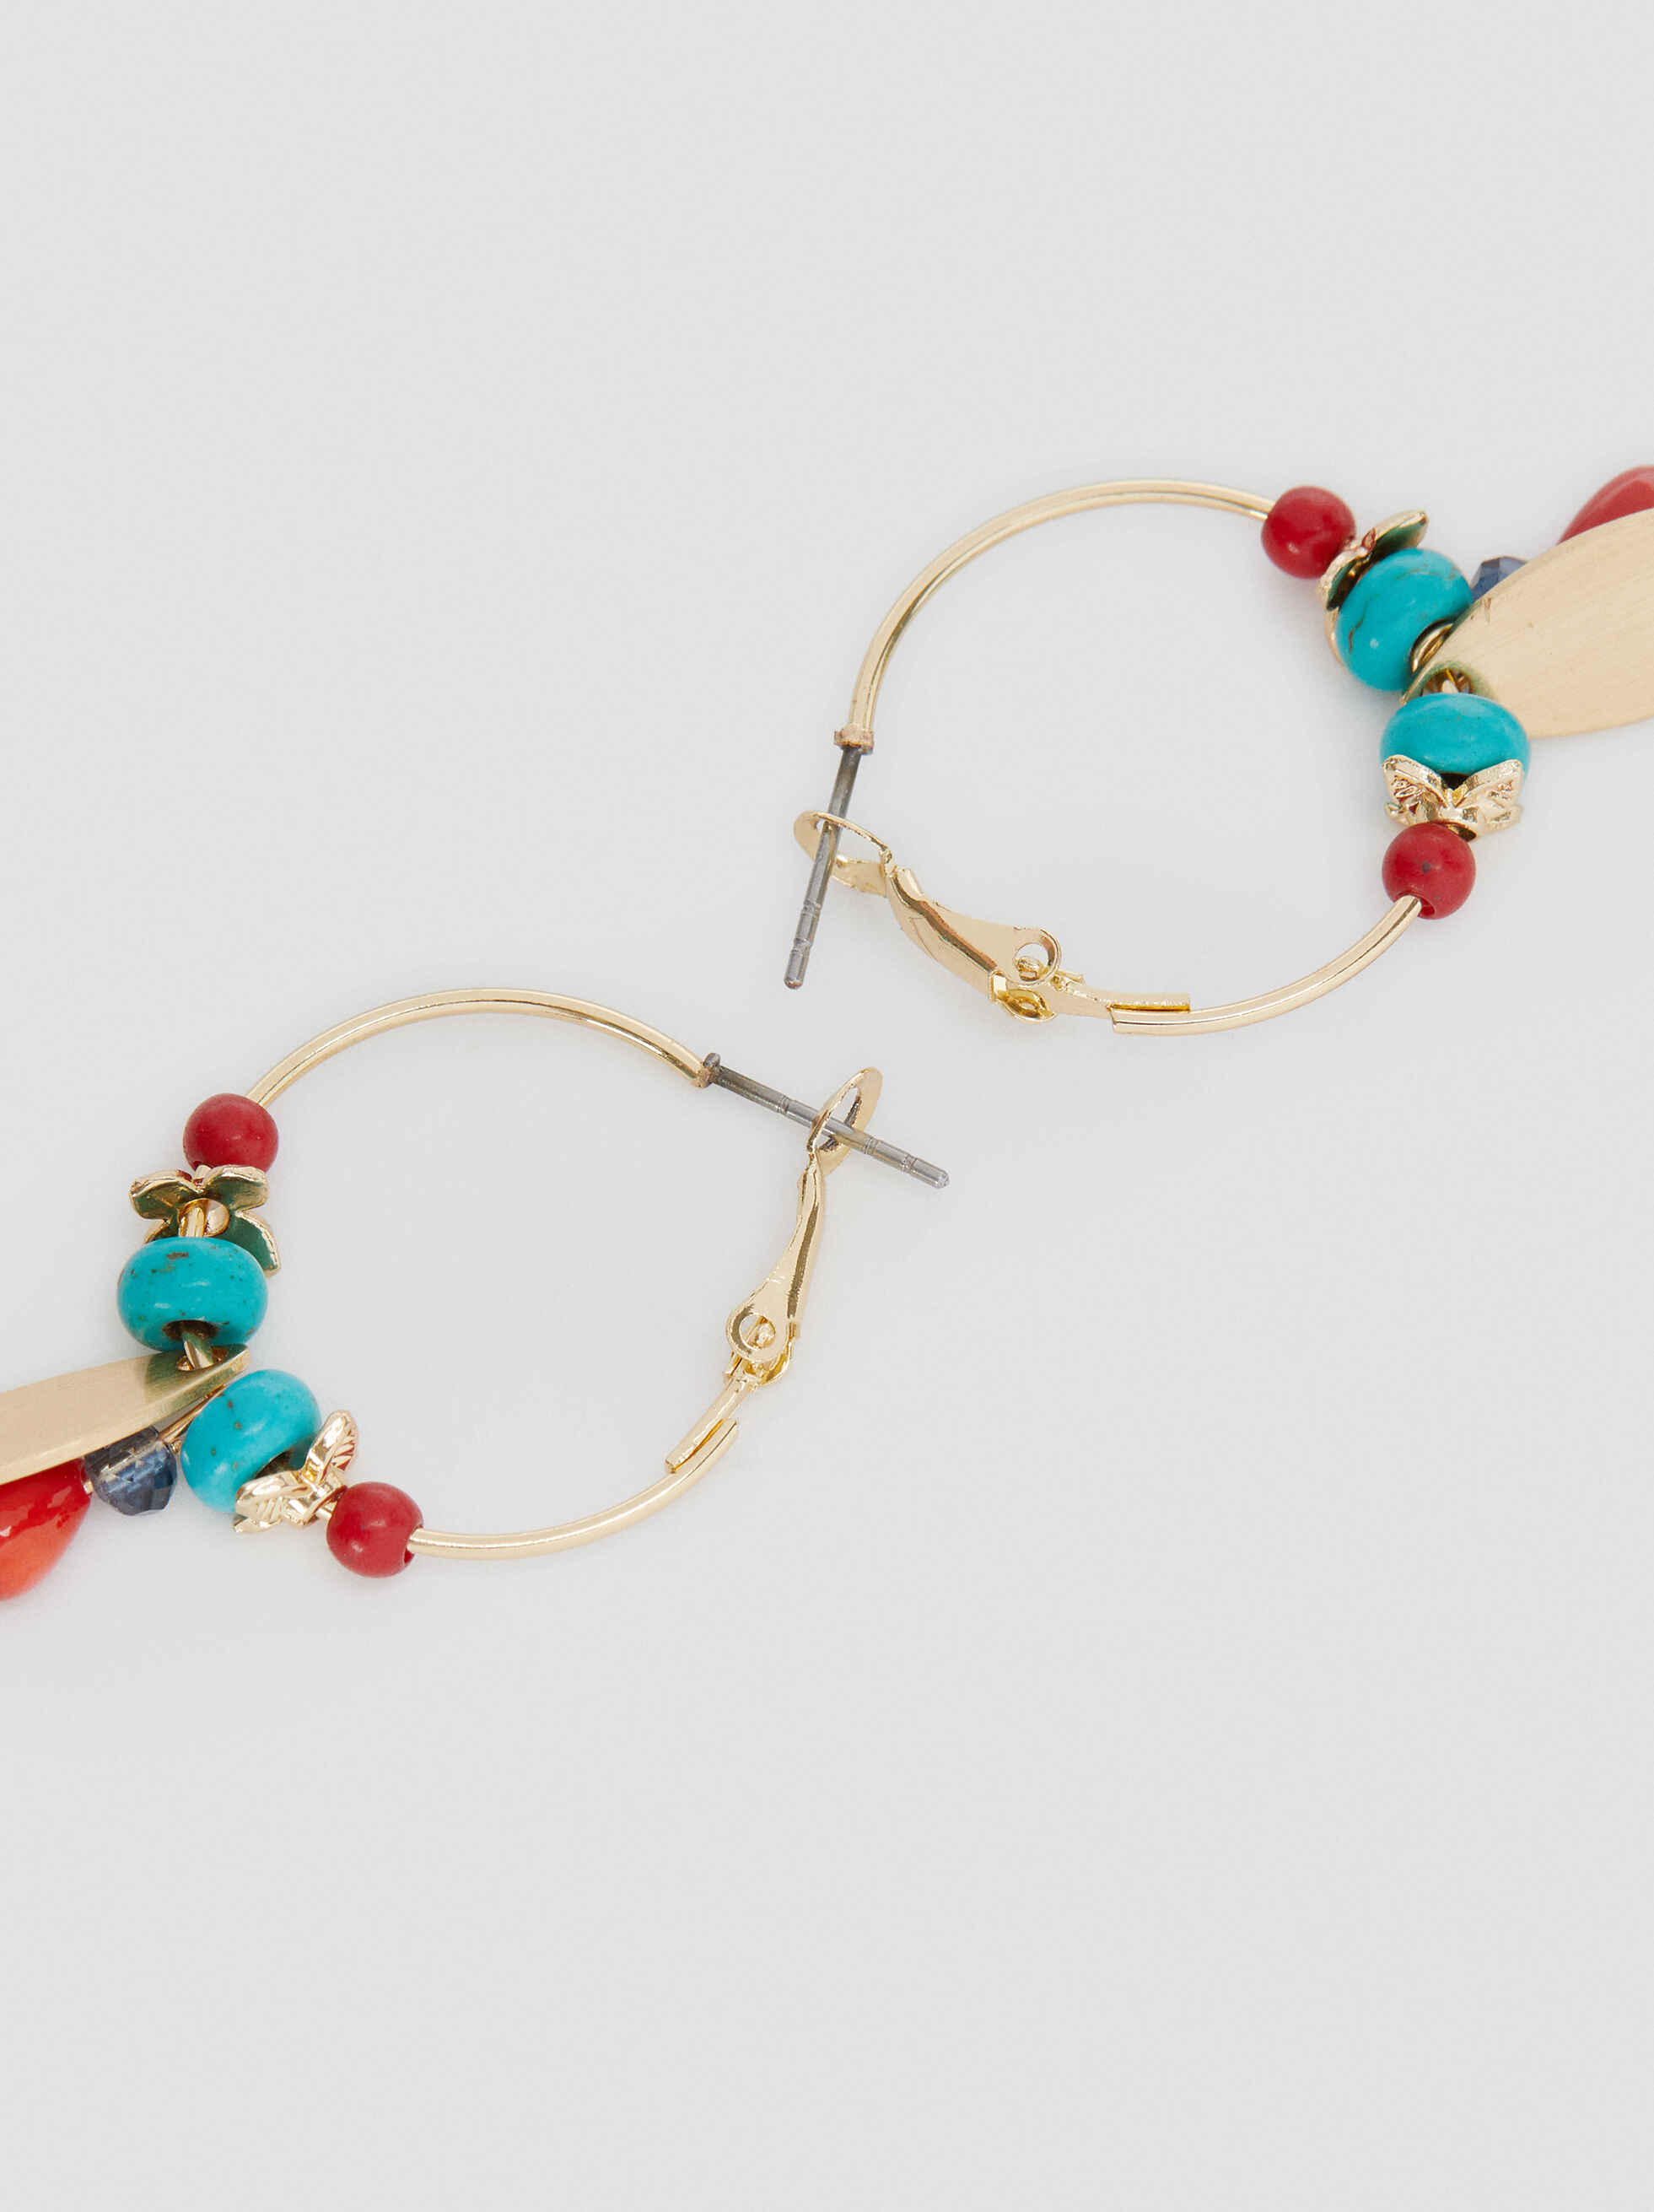 Recife Medium Hoop Earrings With Beads, Multicolor, hi-res